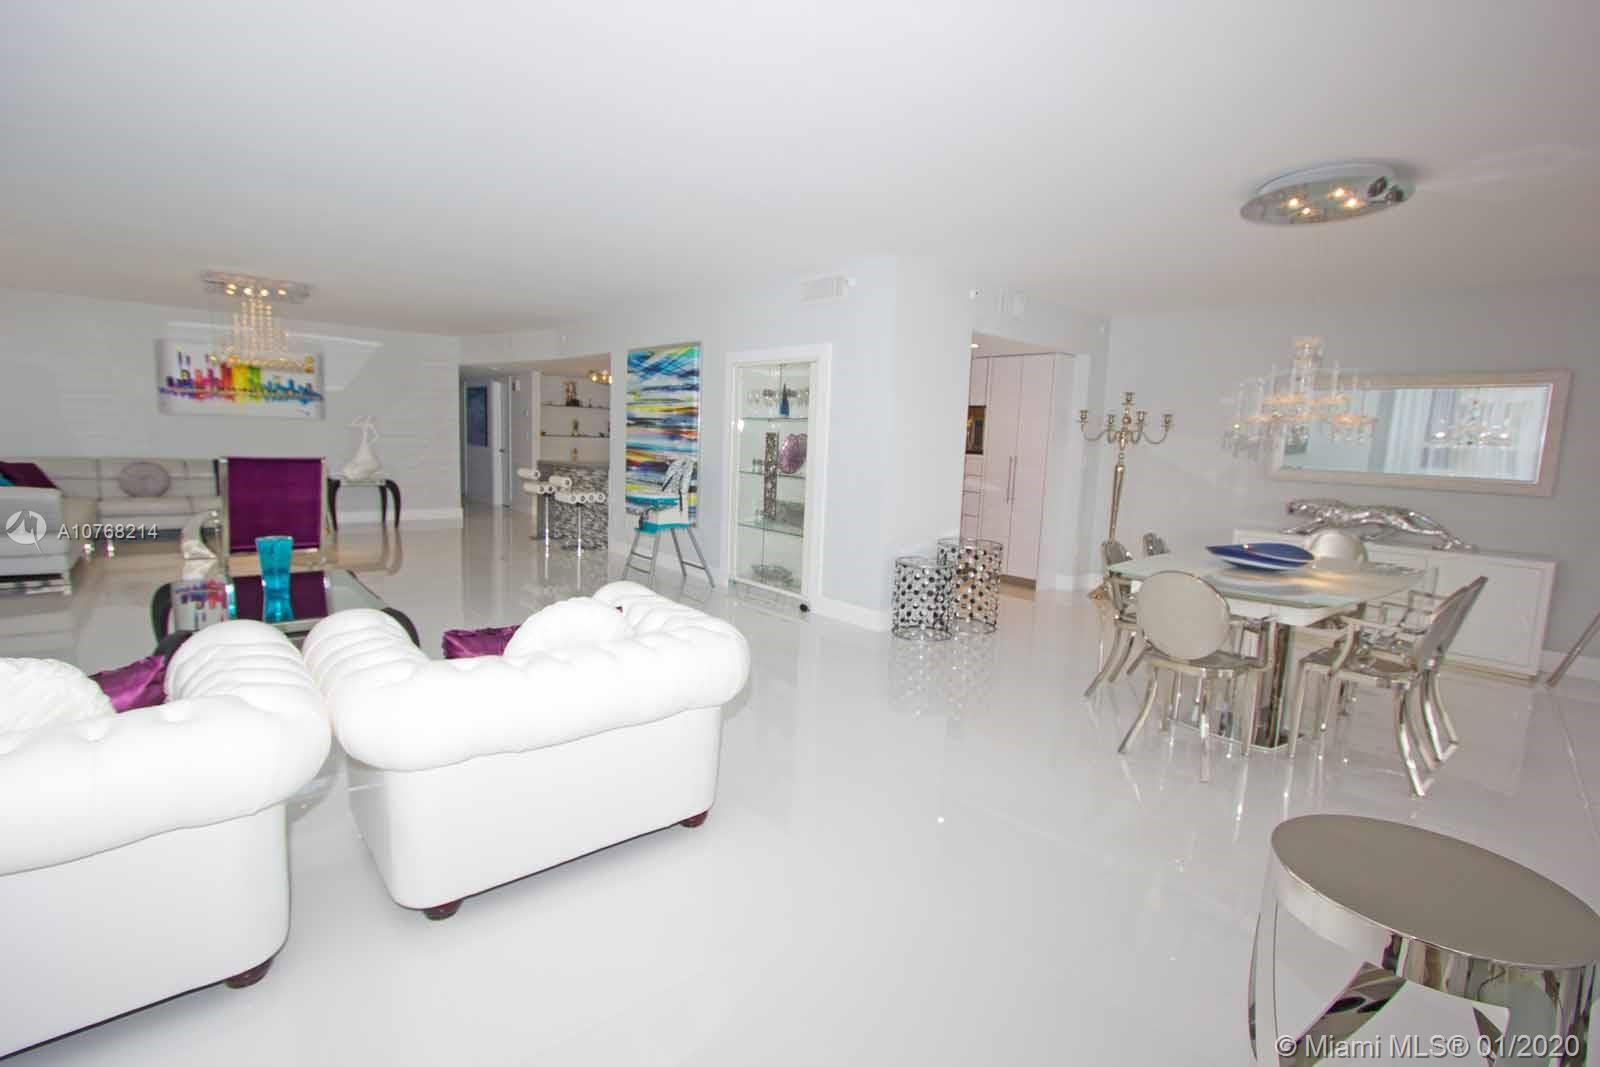 Best 3 bedroom deal in Bal Harbour! Enjoy direct ocean views from this fully furnished 3 Beds and 2.